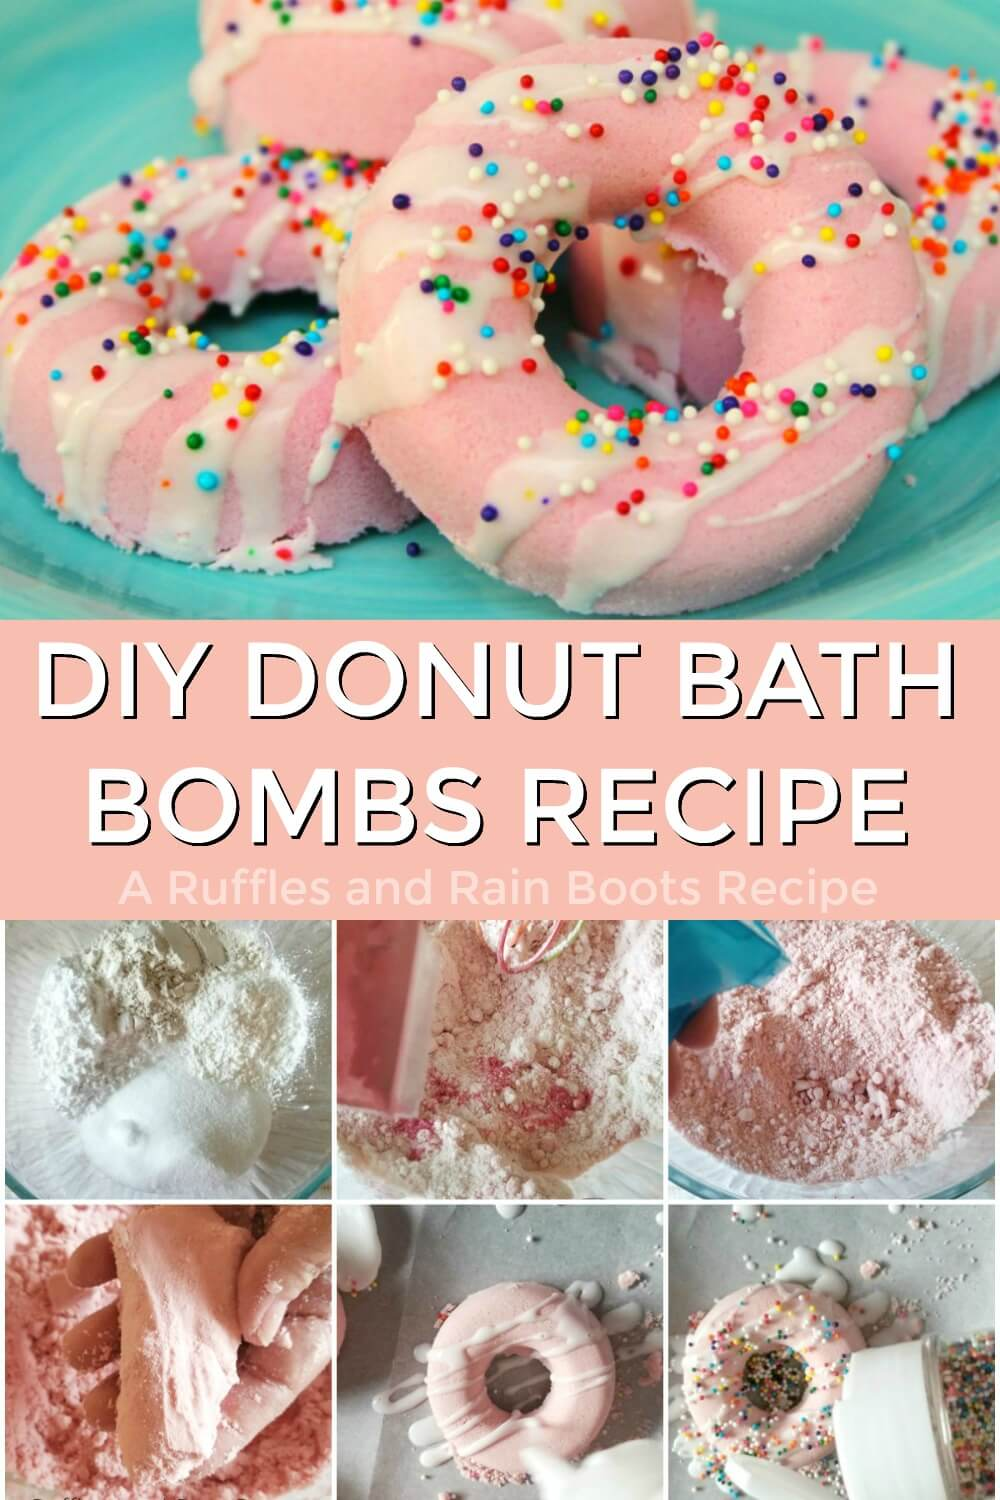 photo collaged of how to make donut bath bombs and final donut bath bomb product with text which reads diy donut bath bombs recipe